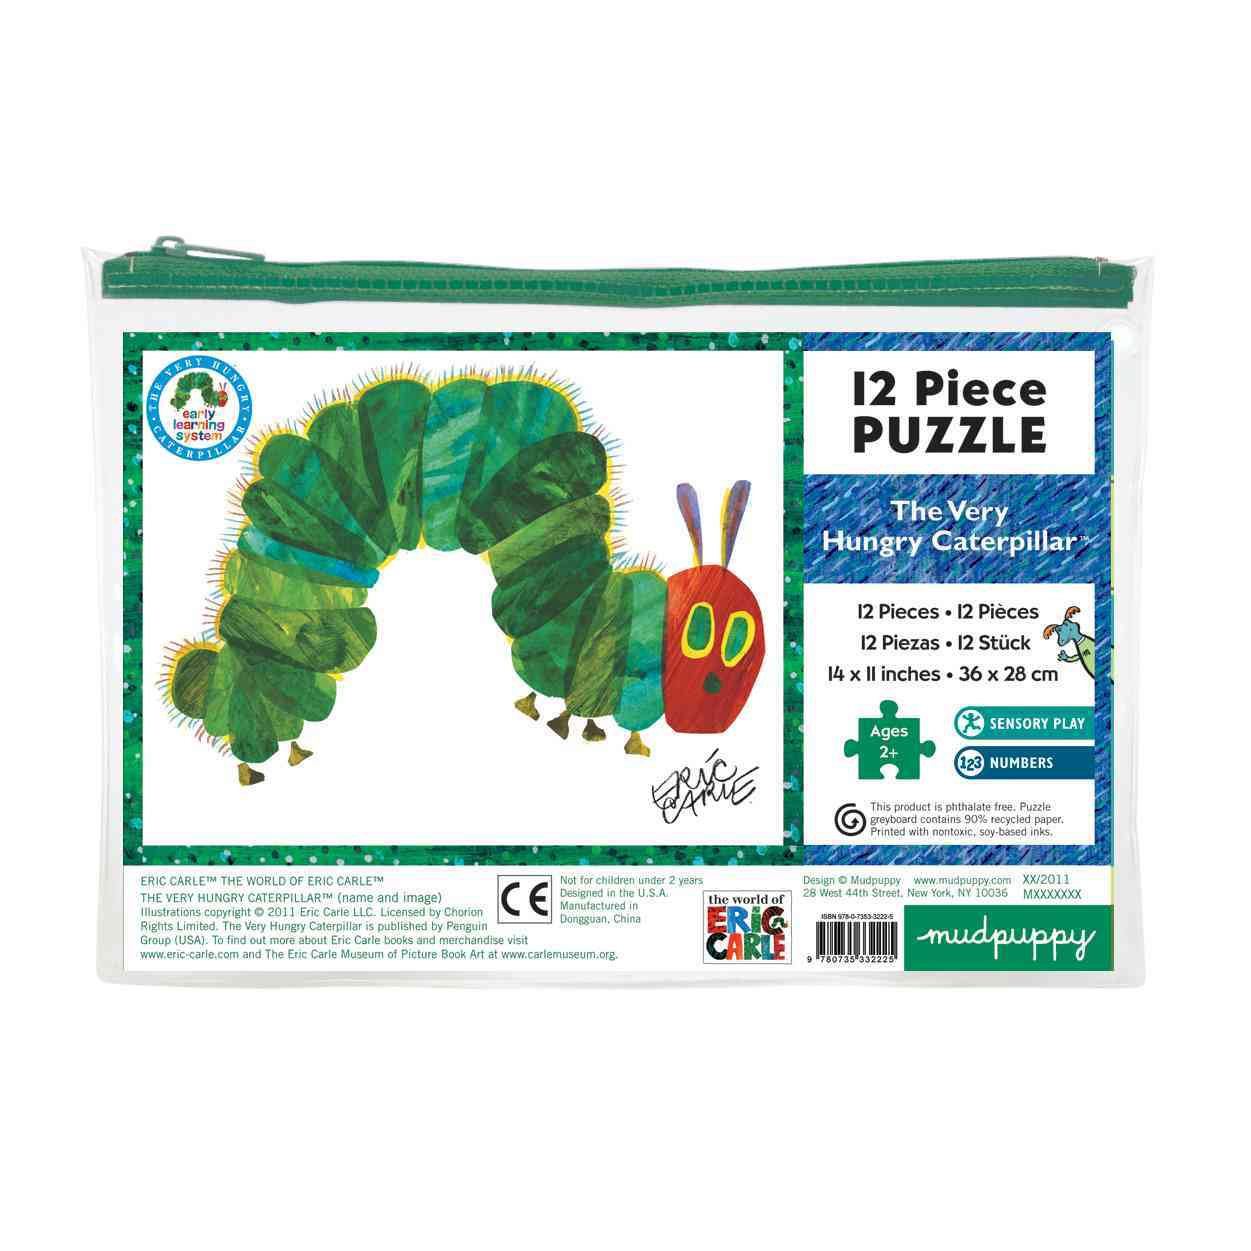 Eric Carle Caterpillar Pouch Puzzle By Carle, Eric (ILT)